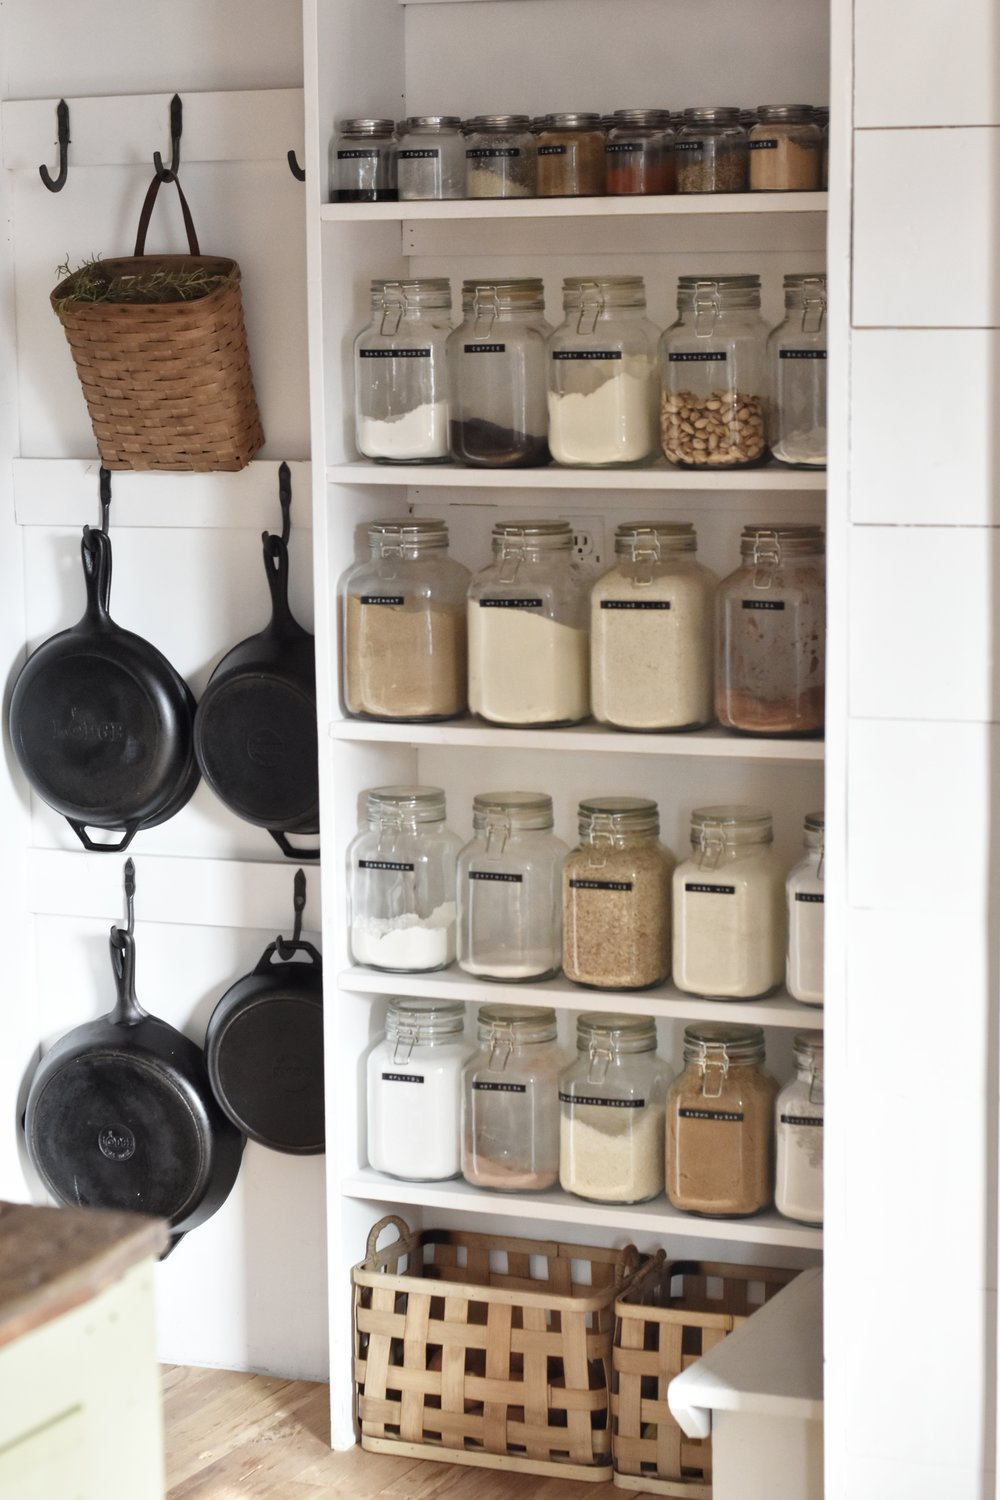 A well stocked and organized kitchen pantry | Rocky Hedge Farm